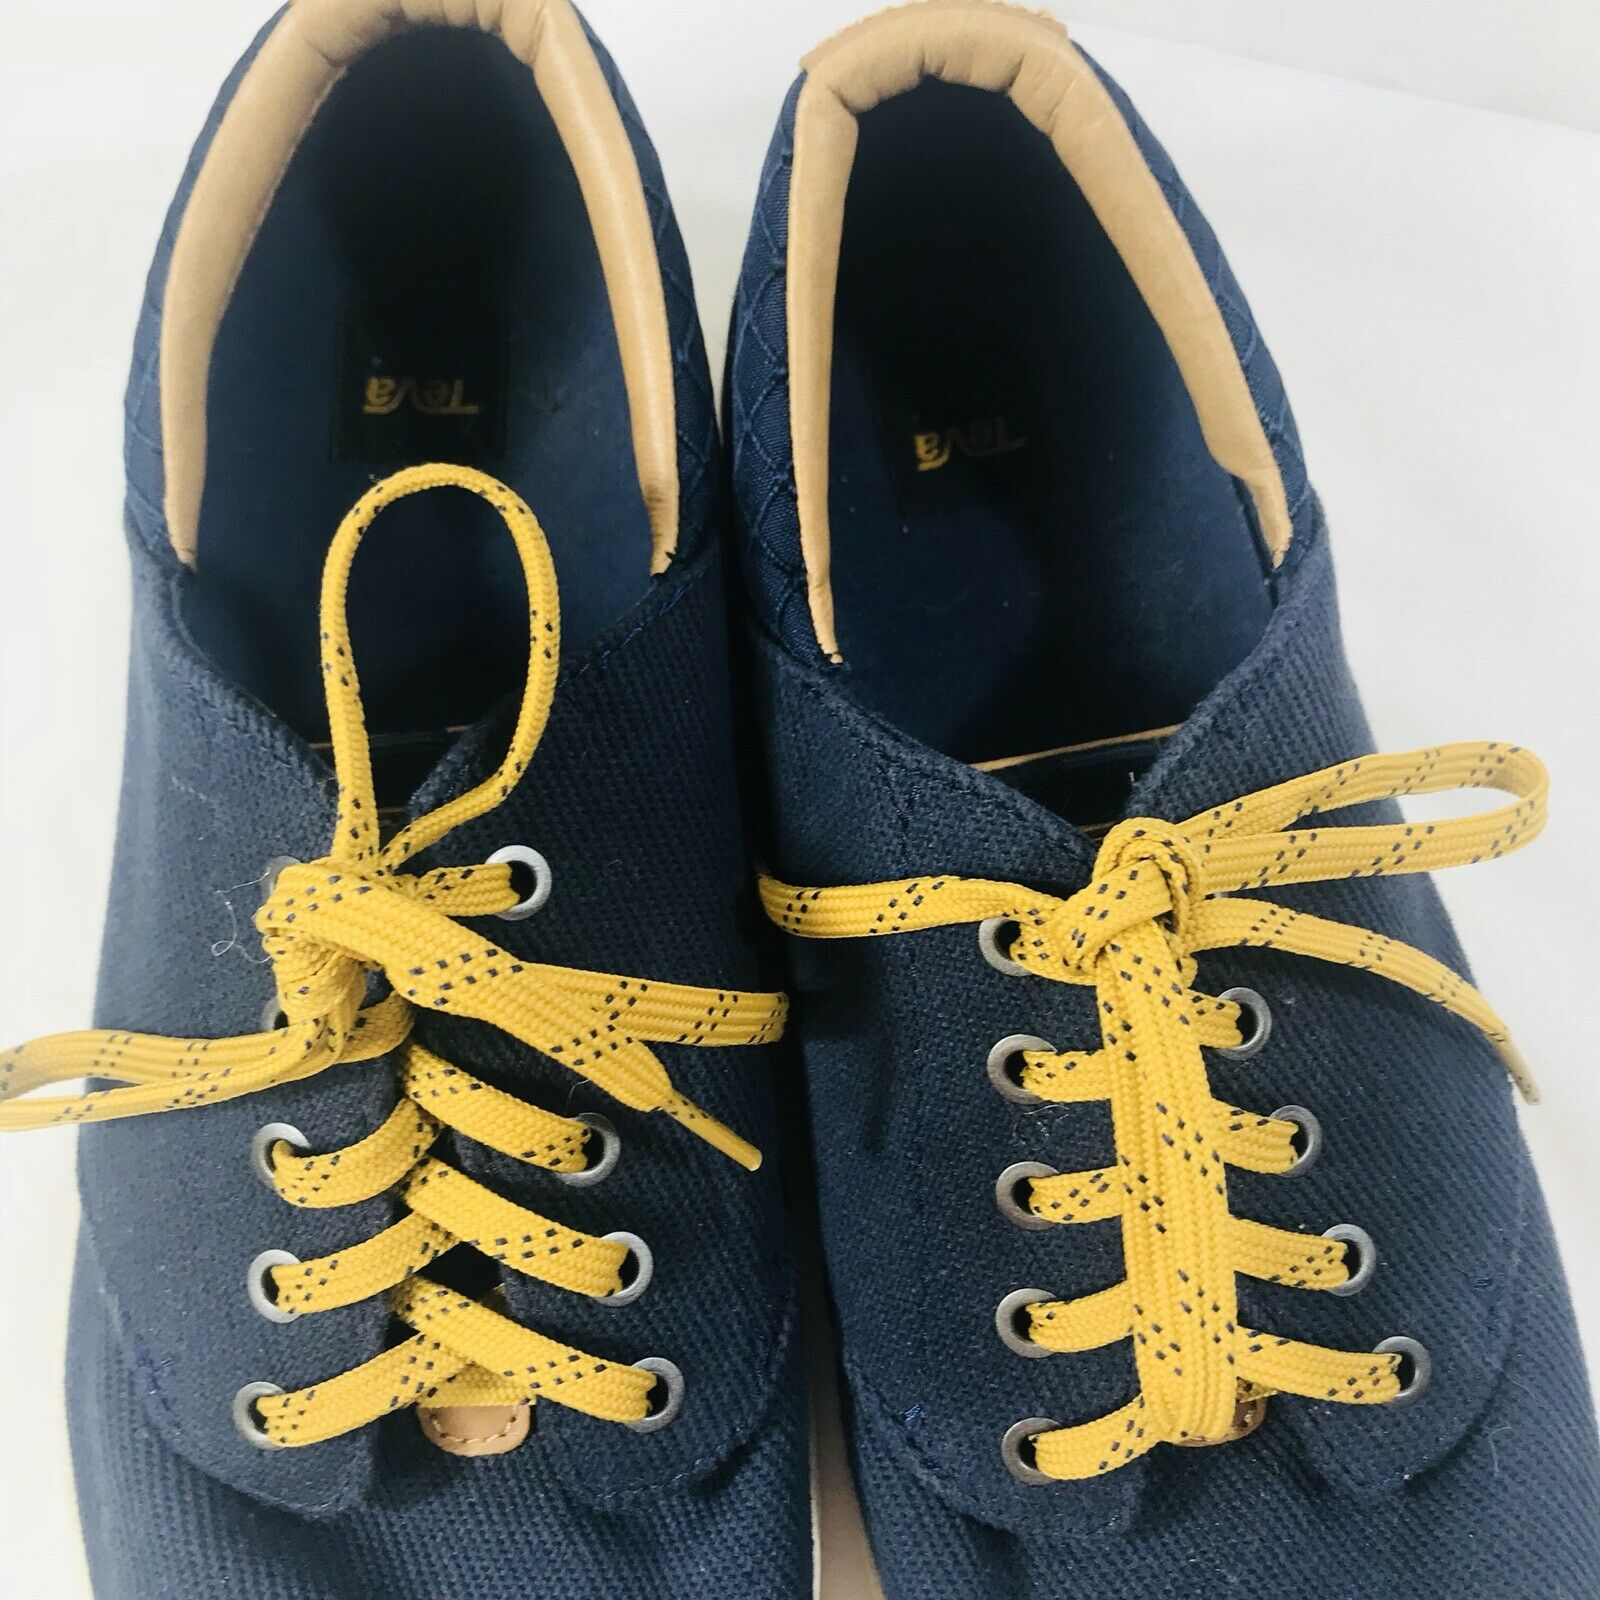 Teva Mens Lace Up Sneakers Casual Navy bluee Yellow Laces Designer Nice  Sz 10.5